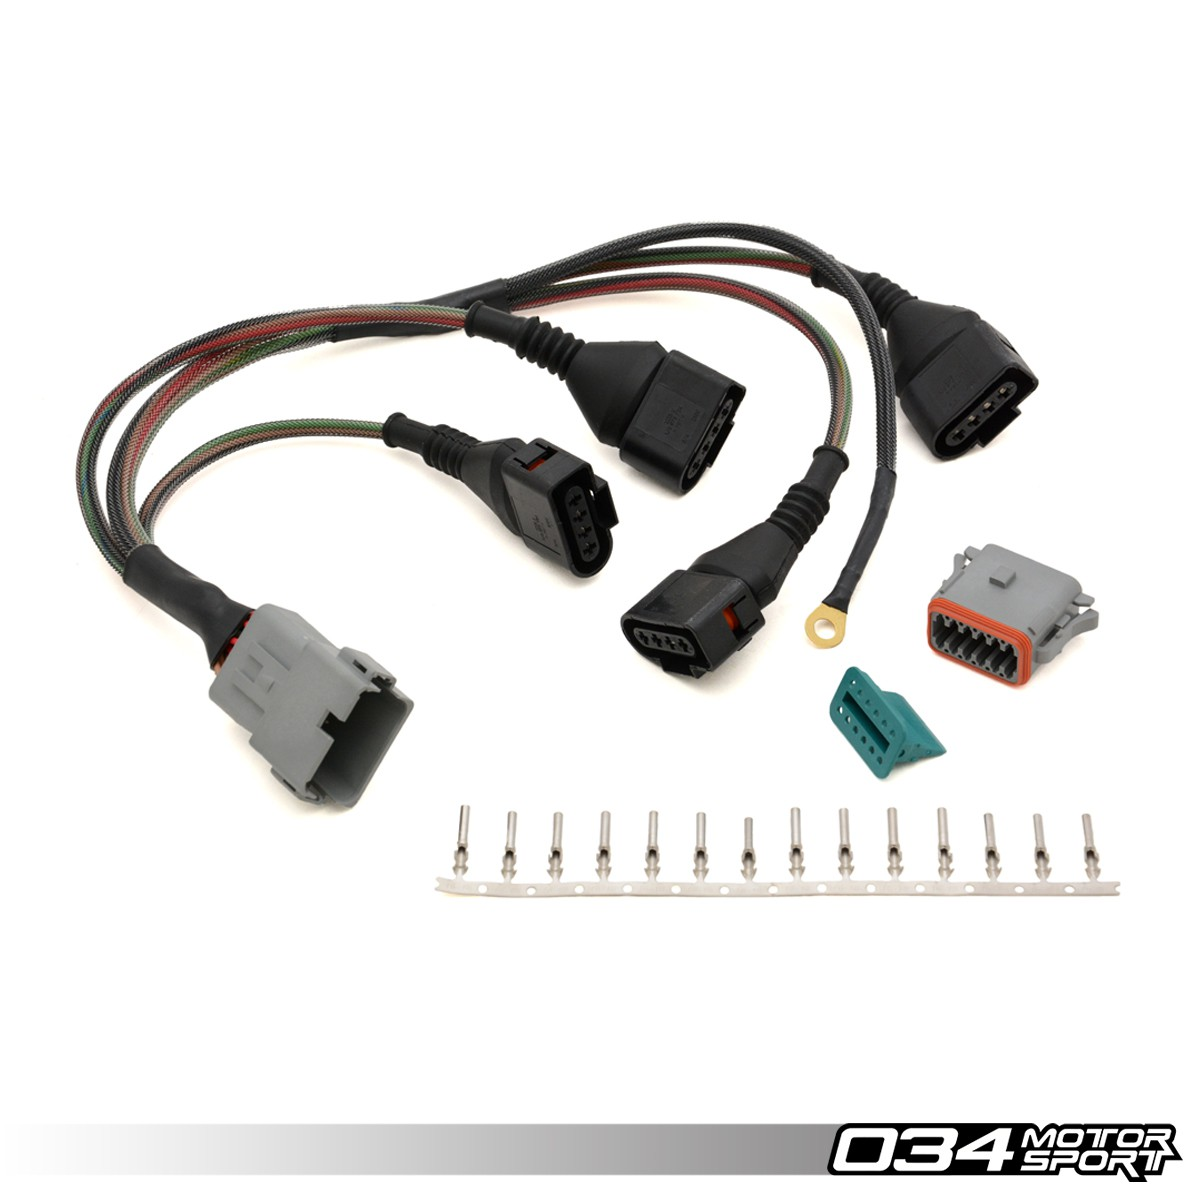 repair update harness audi volkswagen 18t with 4 wire coils 034motorsport 034 701 0004 2 repair update harness, audi volkswagen 1 8t with 4 wire coils Wiring Harness Diagram at panicattacktreatment.co